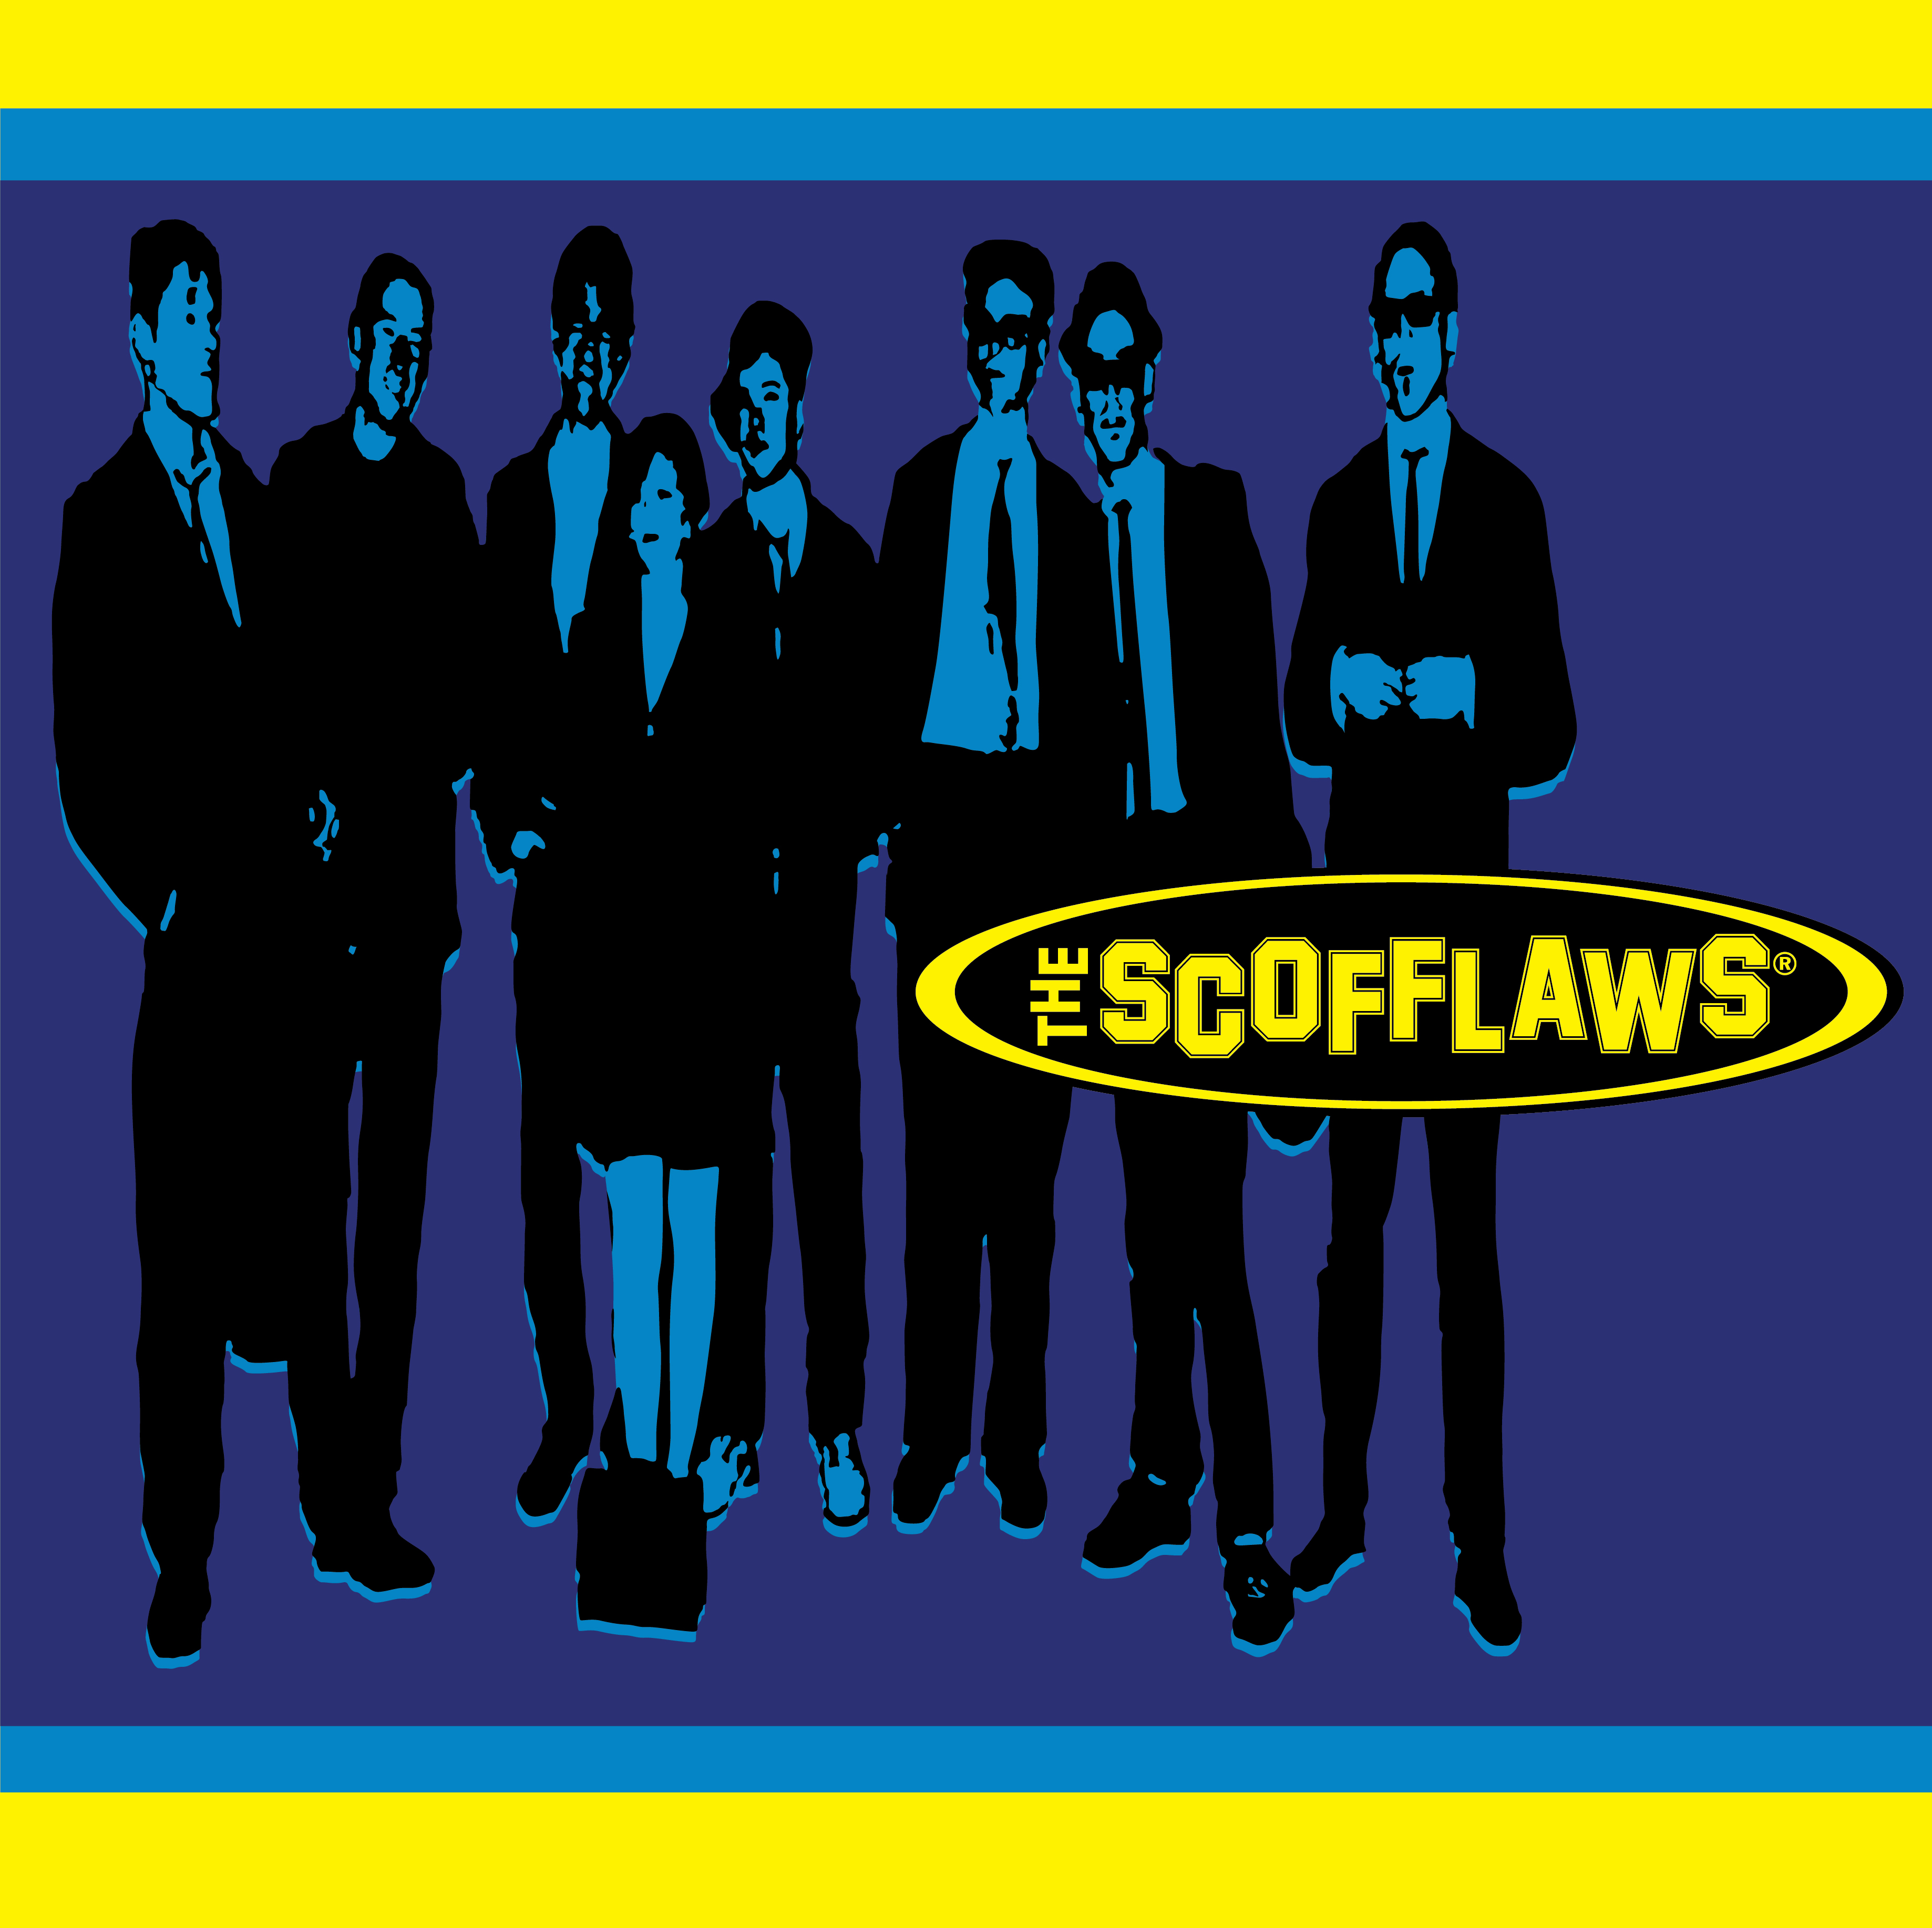 Scofflaws, The/THE SCOFFLAWS (DEBUT) LP